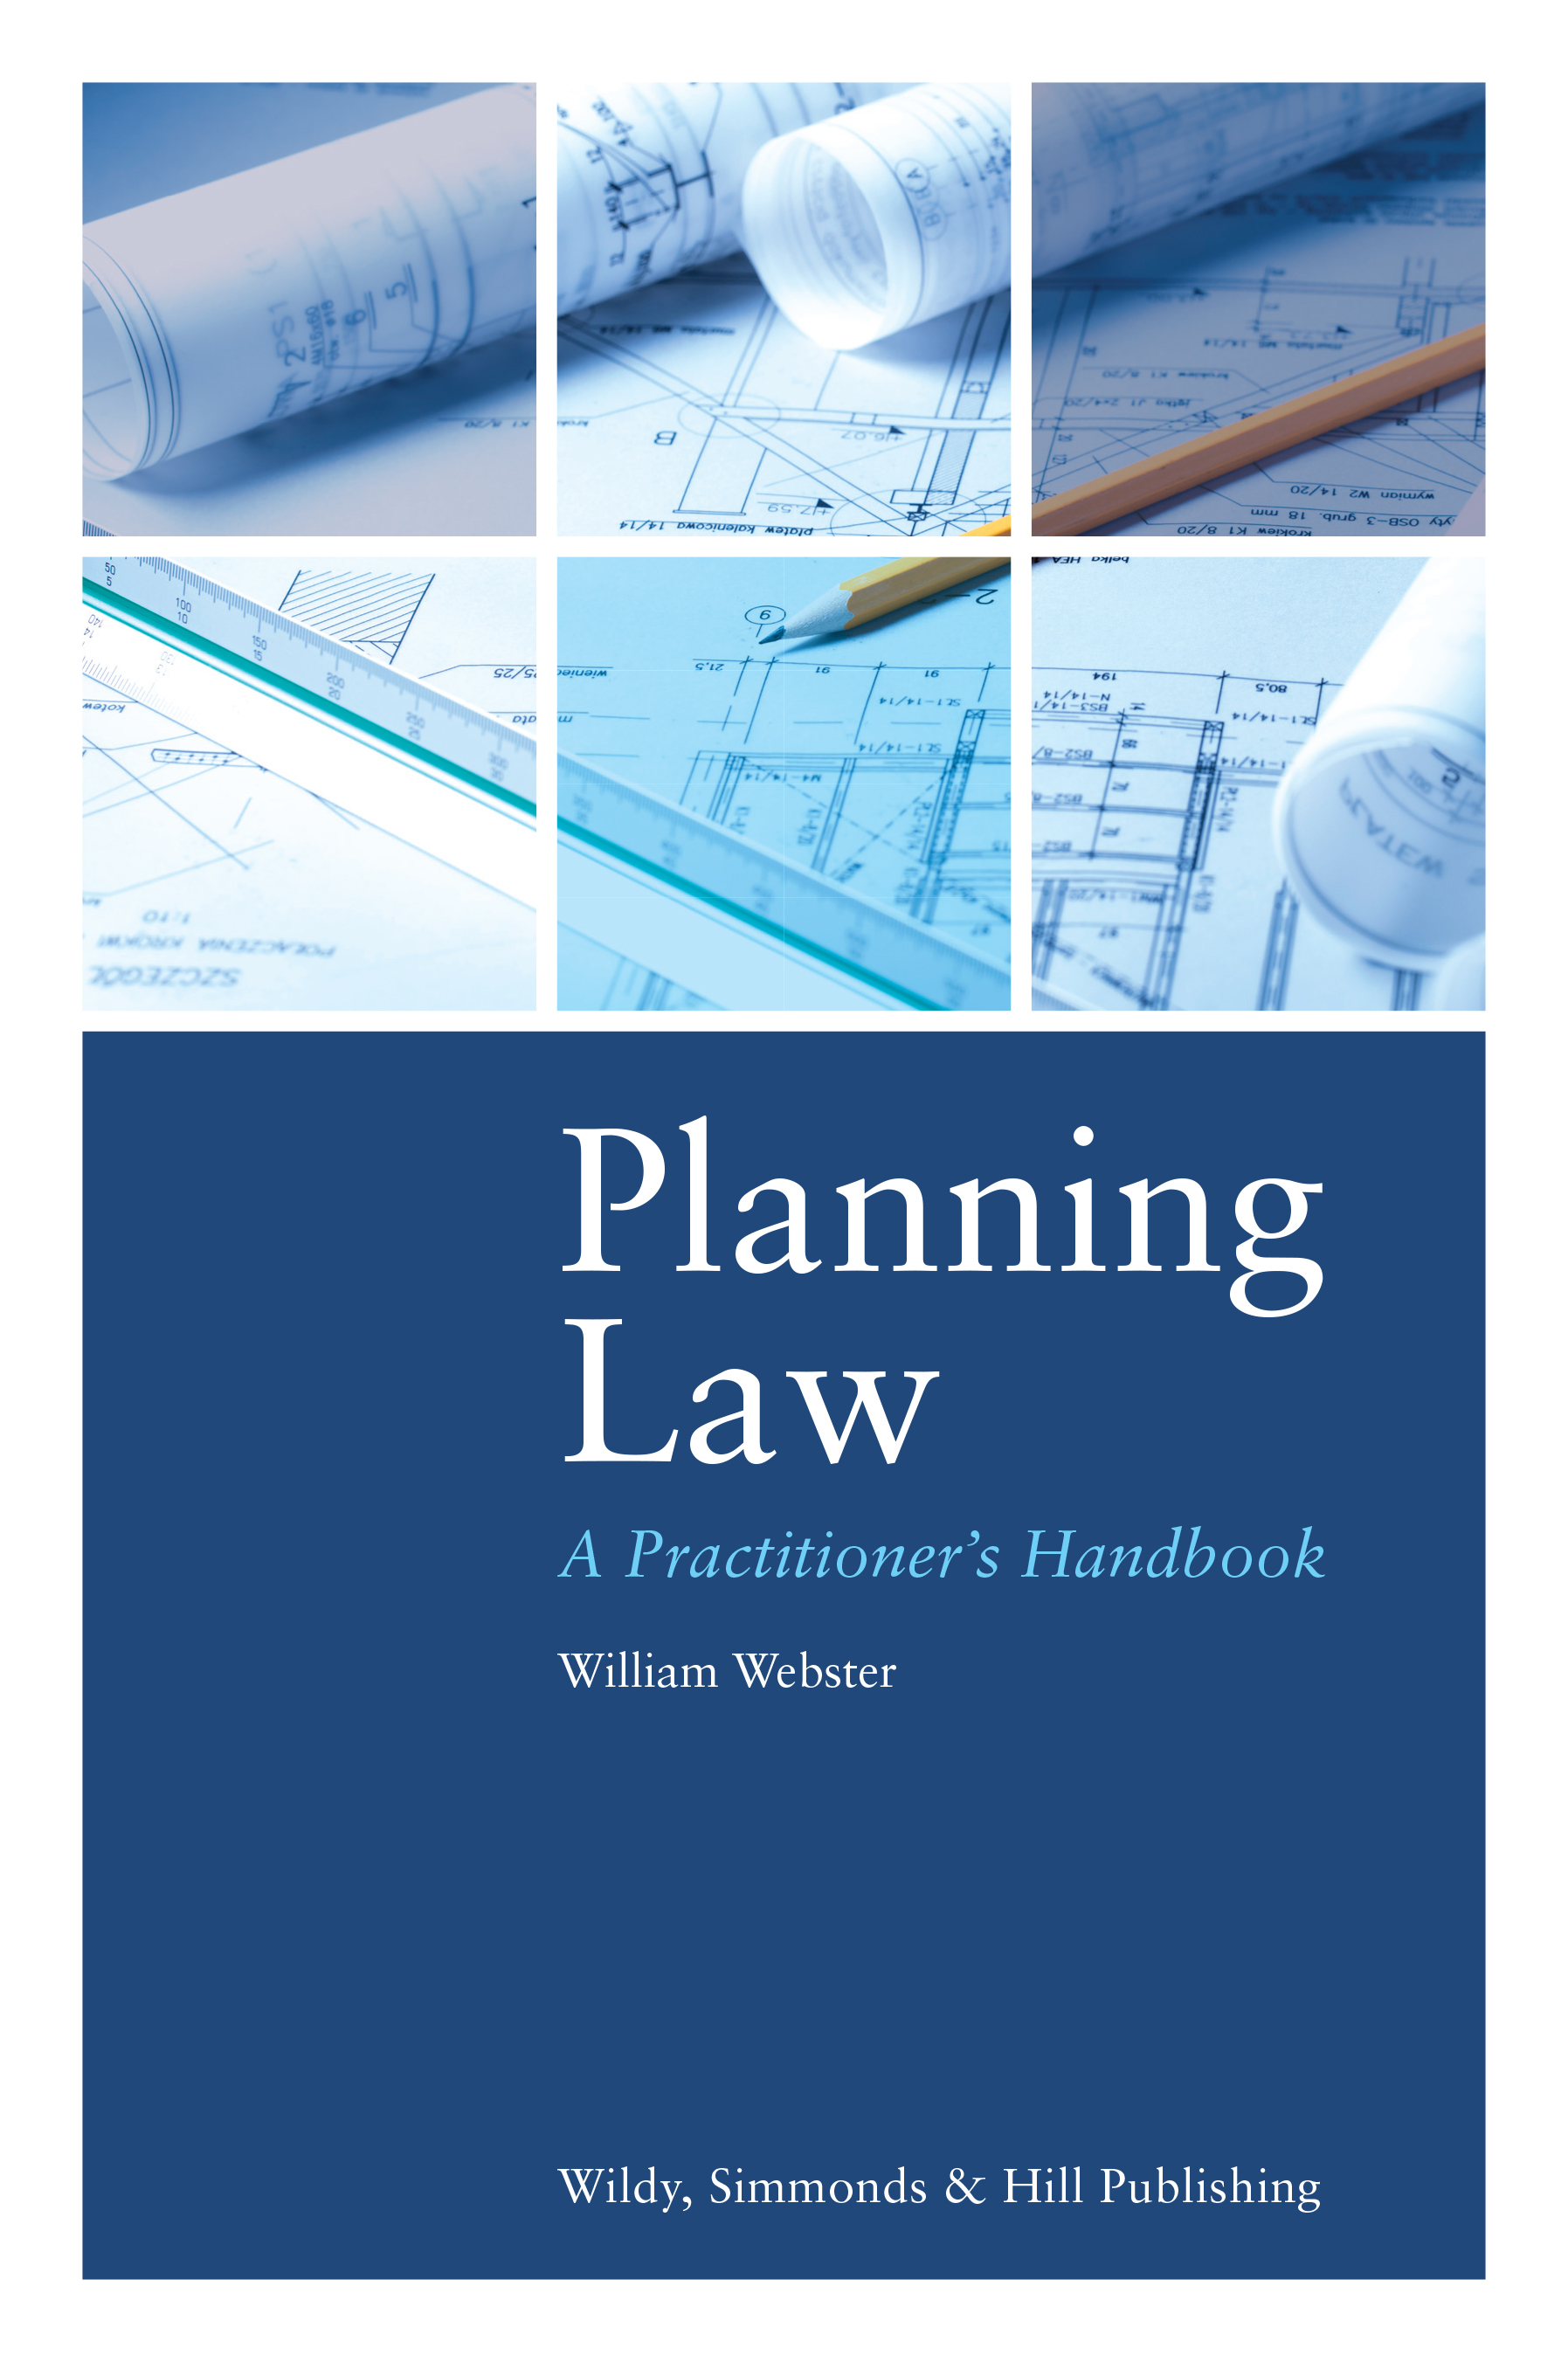 Planning Law cover high res 2